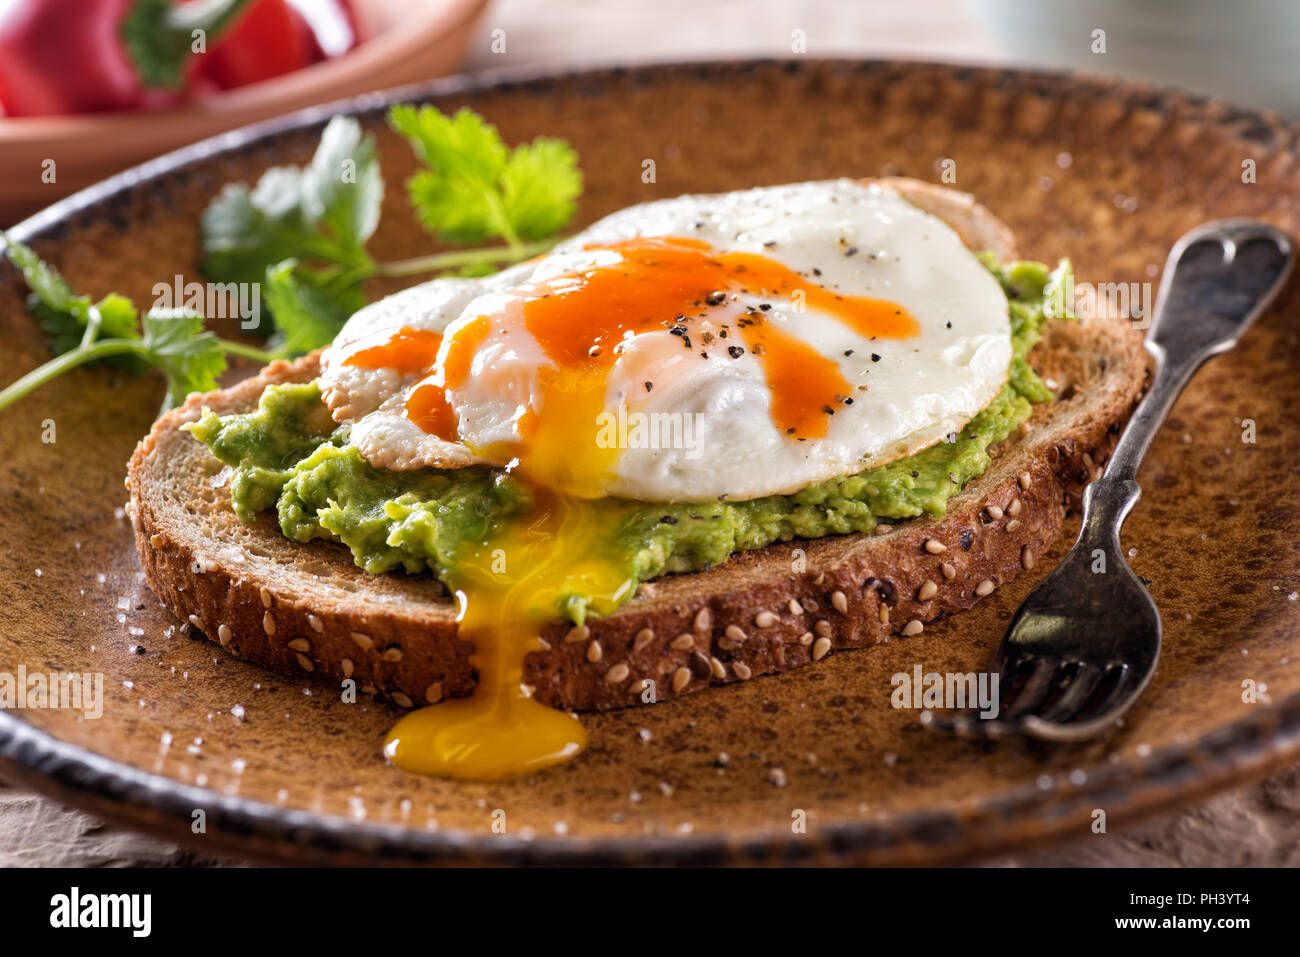 A slice of toast with delicious avocado, fried egg and hot sauce. - Stock Image